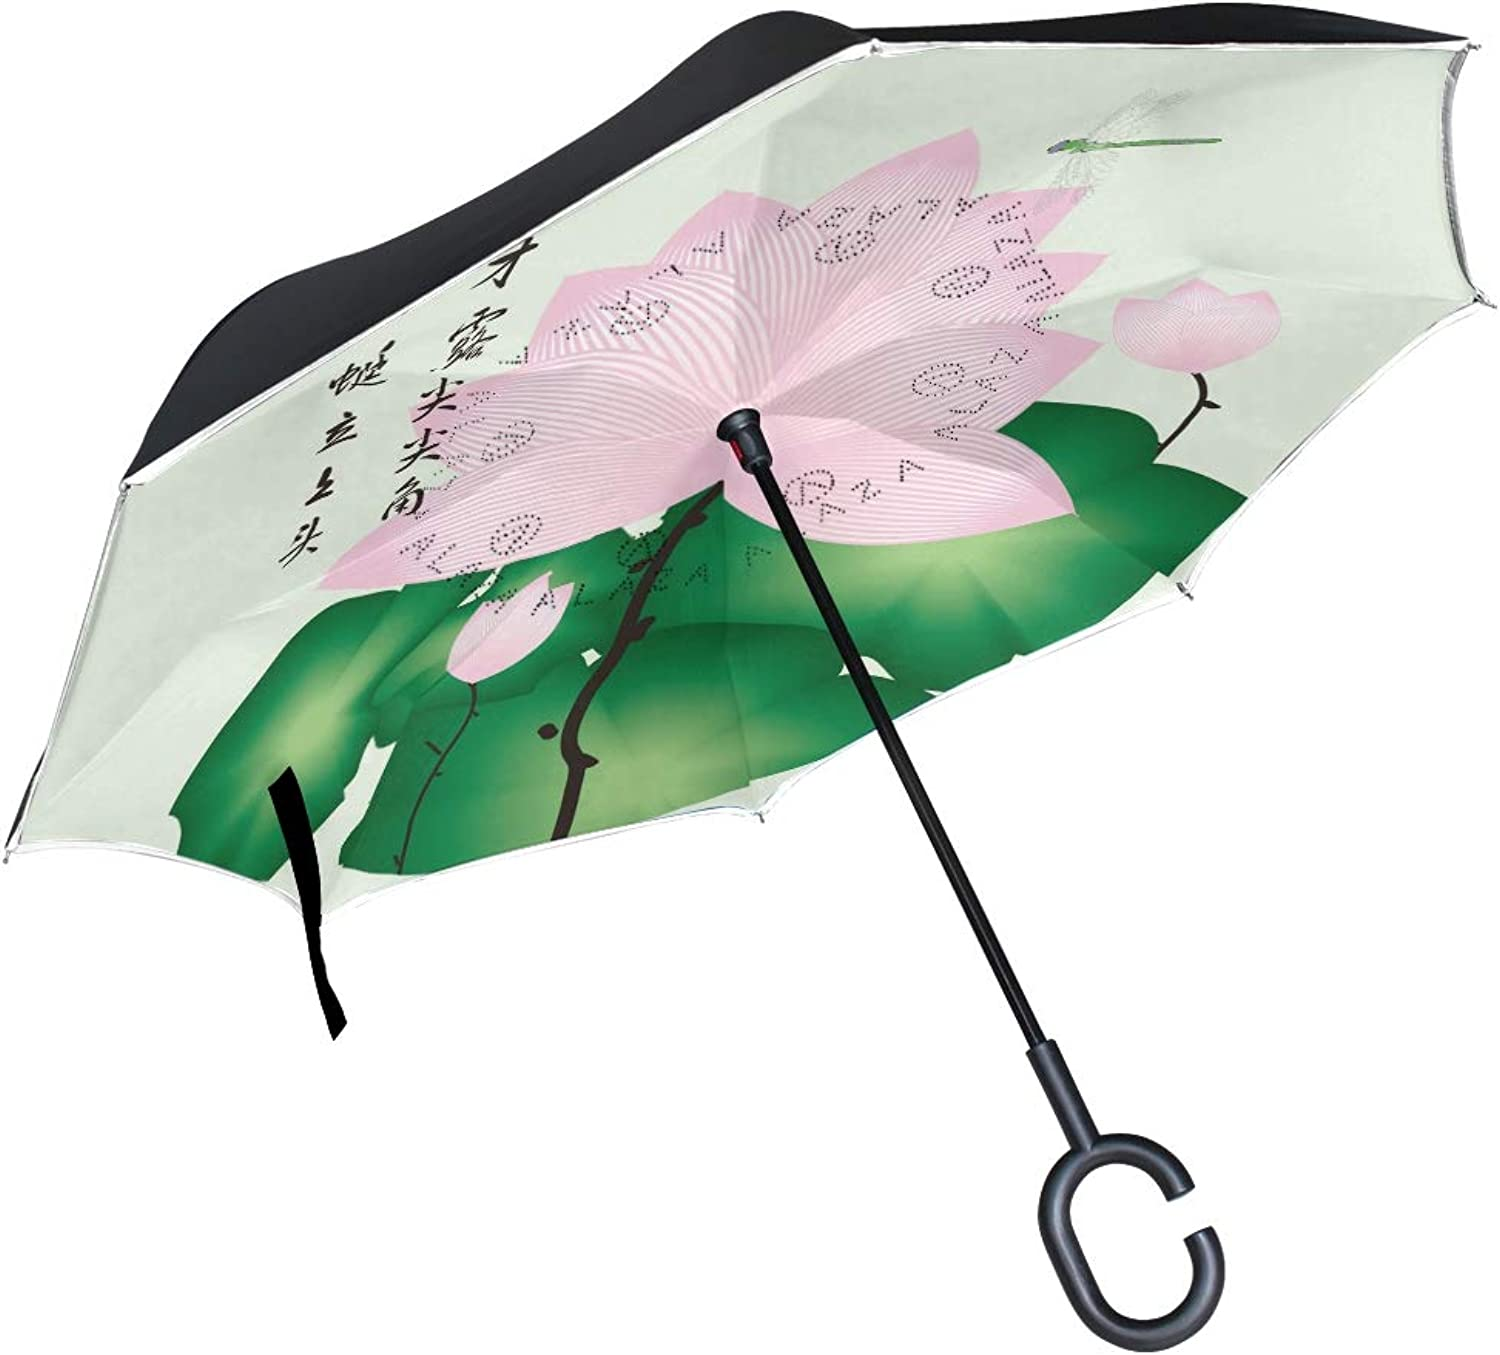 1ed8634488d9 bluee Dragonfly Ingreened Umbrella Compact Windproof Double Layer ...